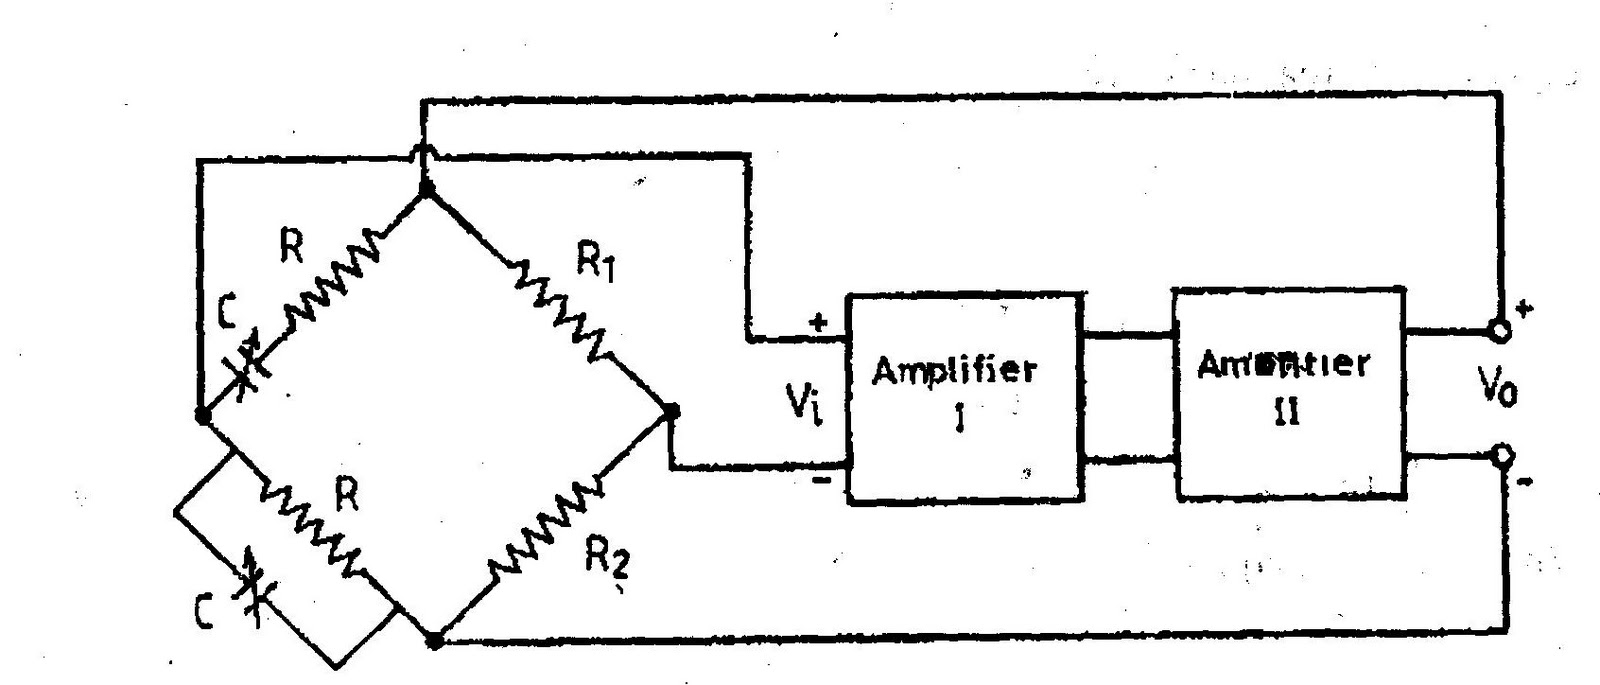 A Media To Get All Datas In Electrical Science Wein Bridge Rc And Oscillator Circuit Oscillatorcircuit We Can Vary The Frequency Of This By Varying Two Capacitors Simultaneously